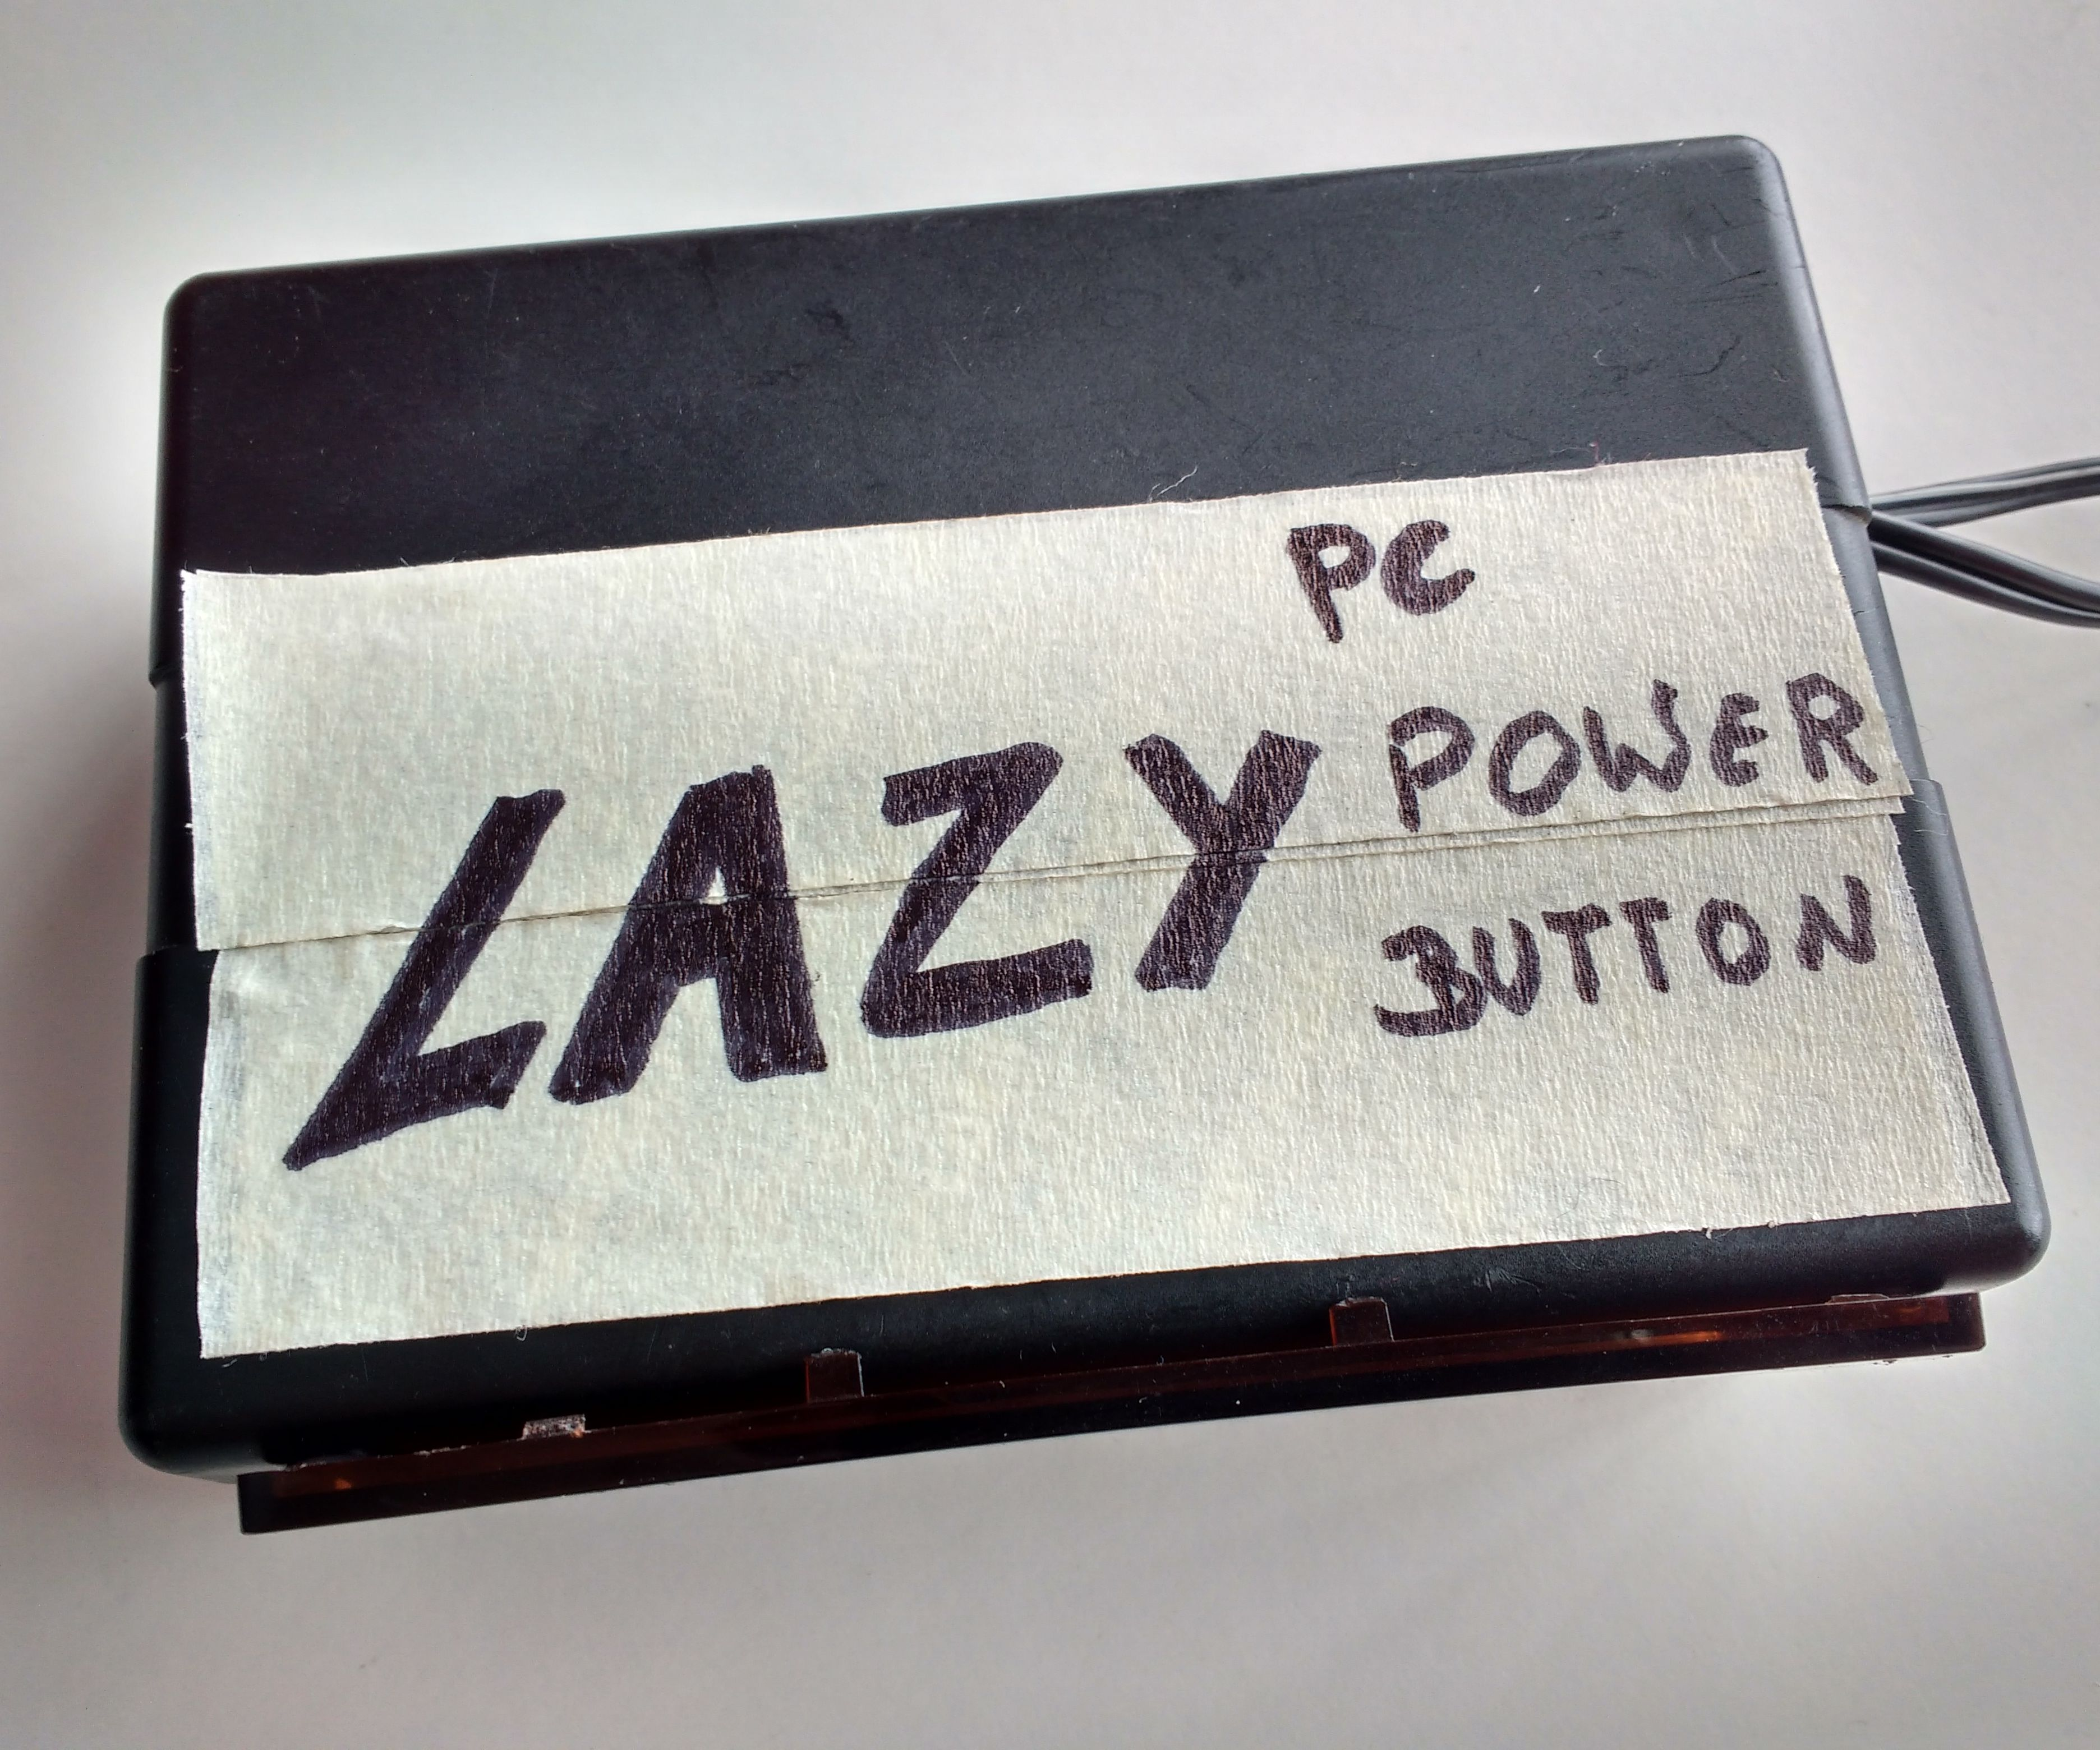 Lazy Pc Power Button